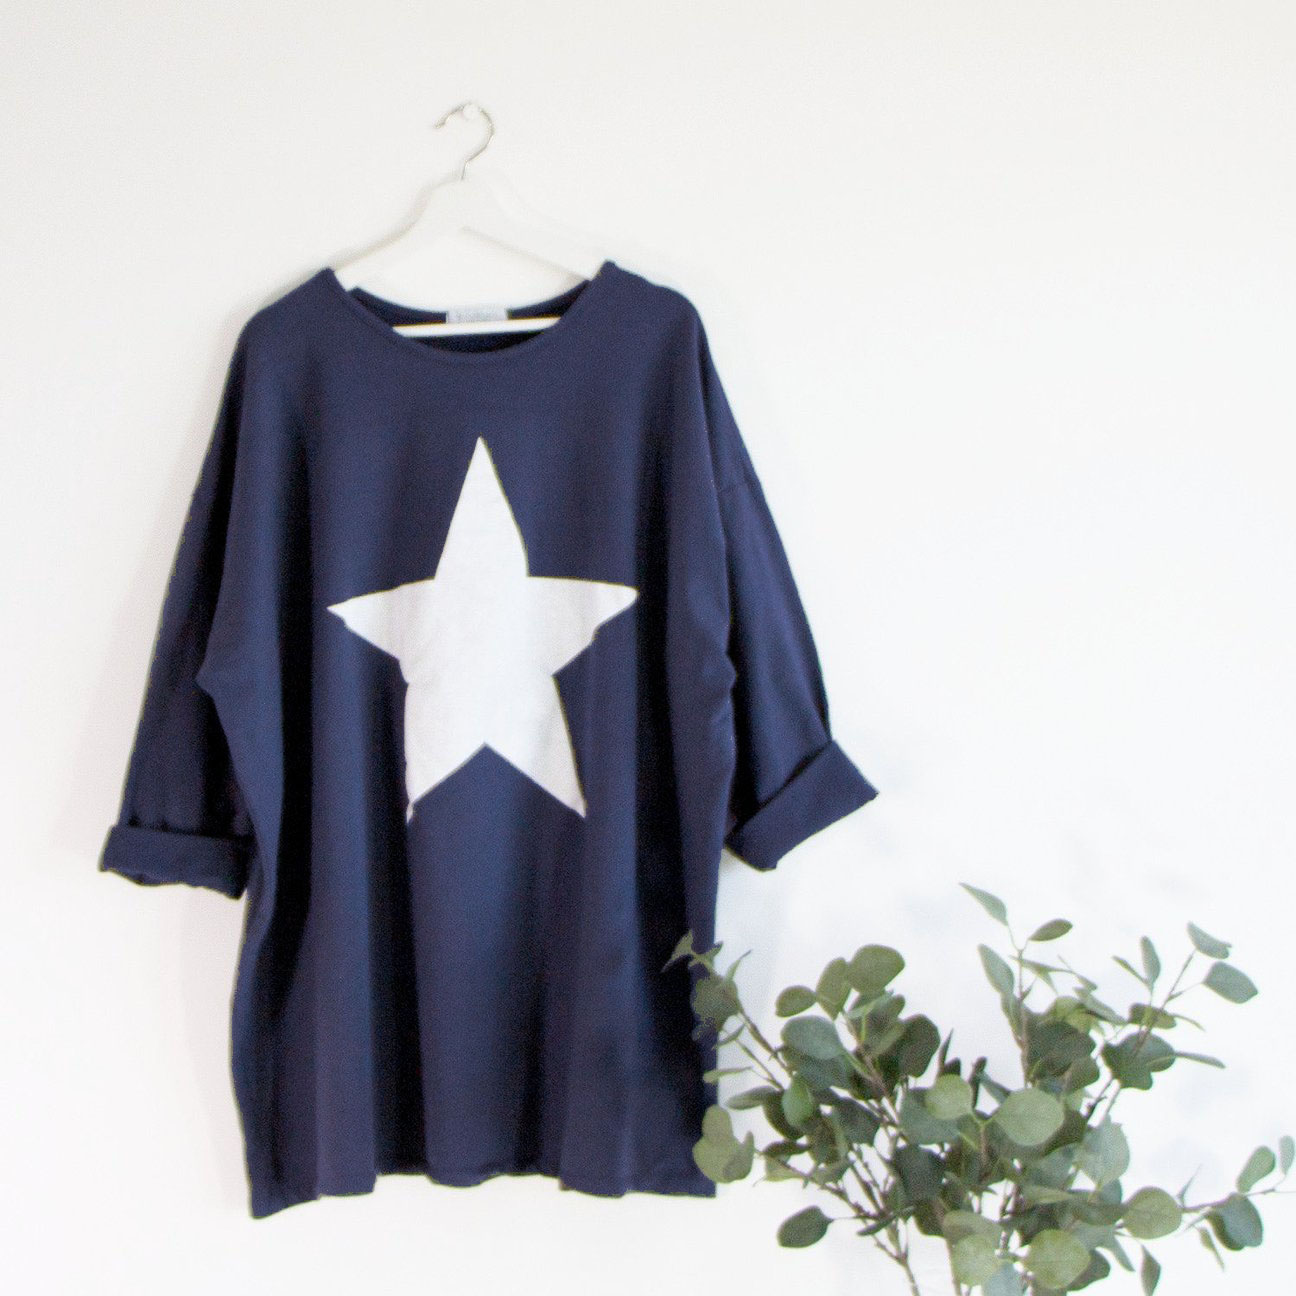 SALE WAS £30 NOW £20 LONGLINE COTTON SWEATSHIRT WITH STAR MOTIF